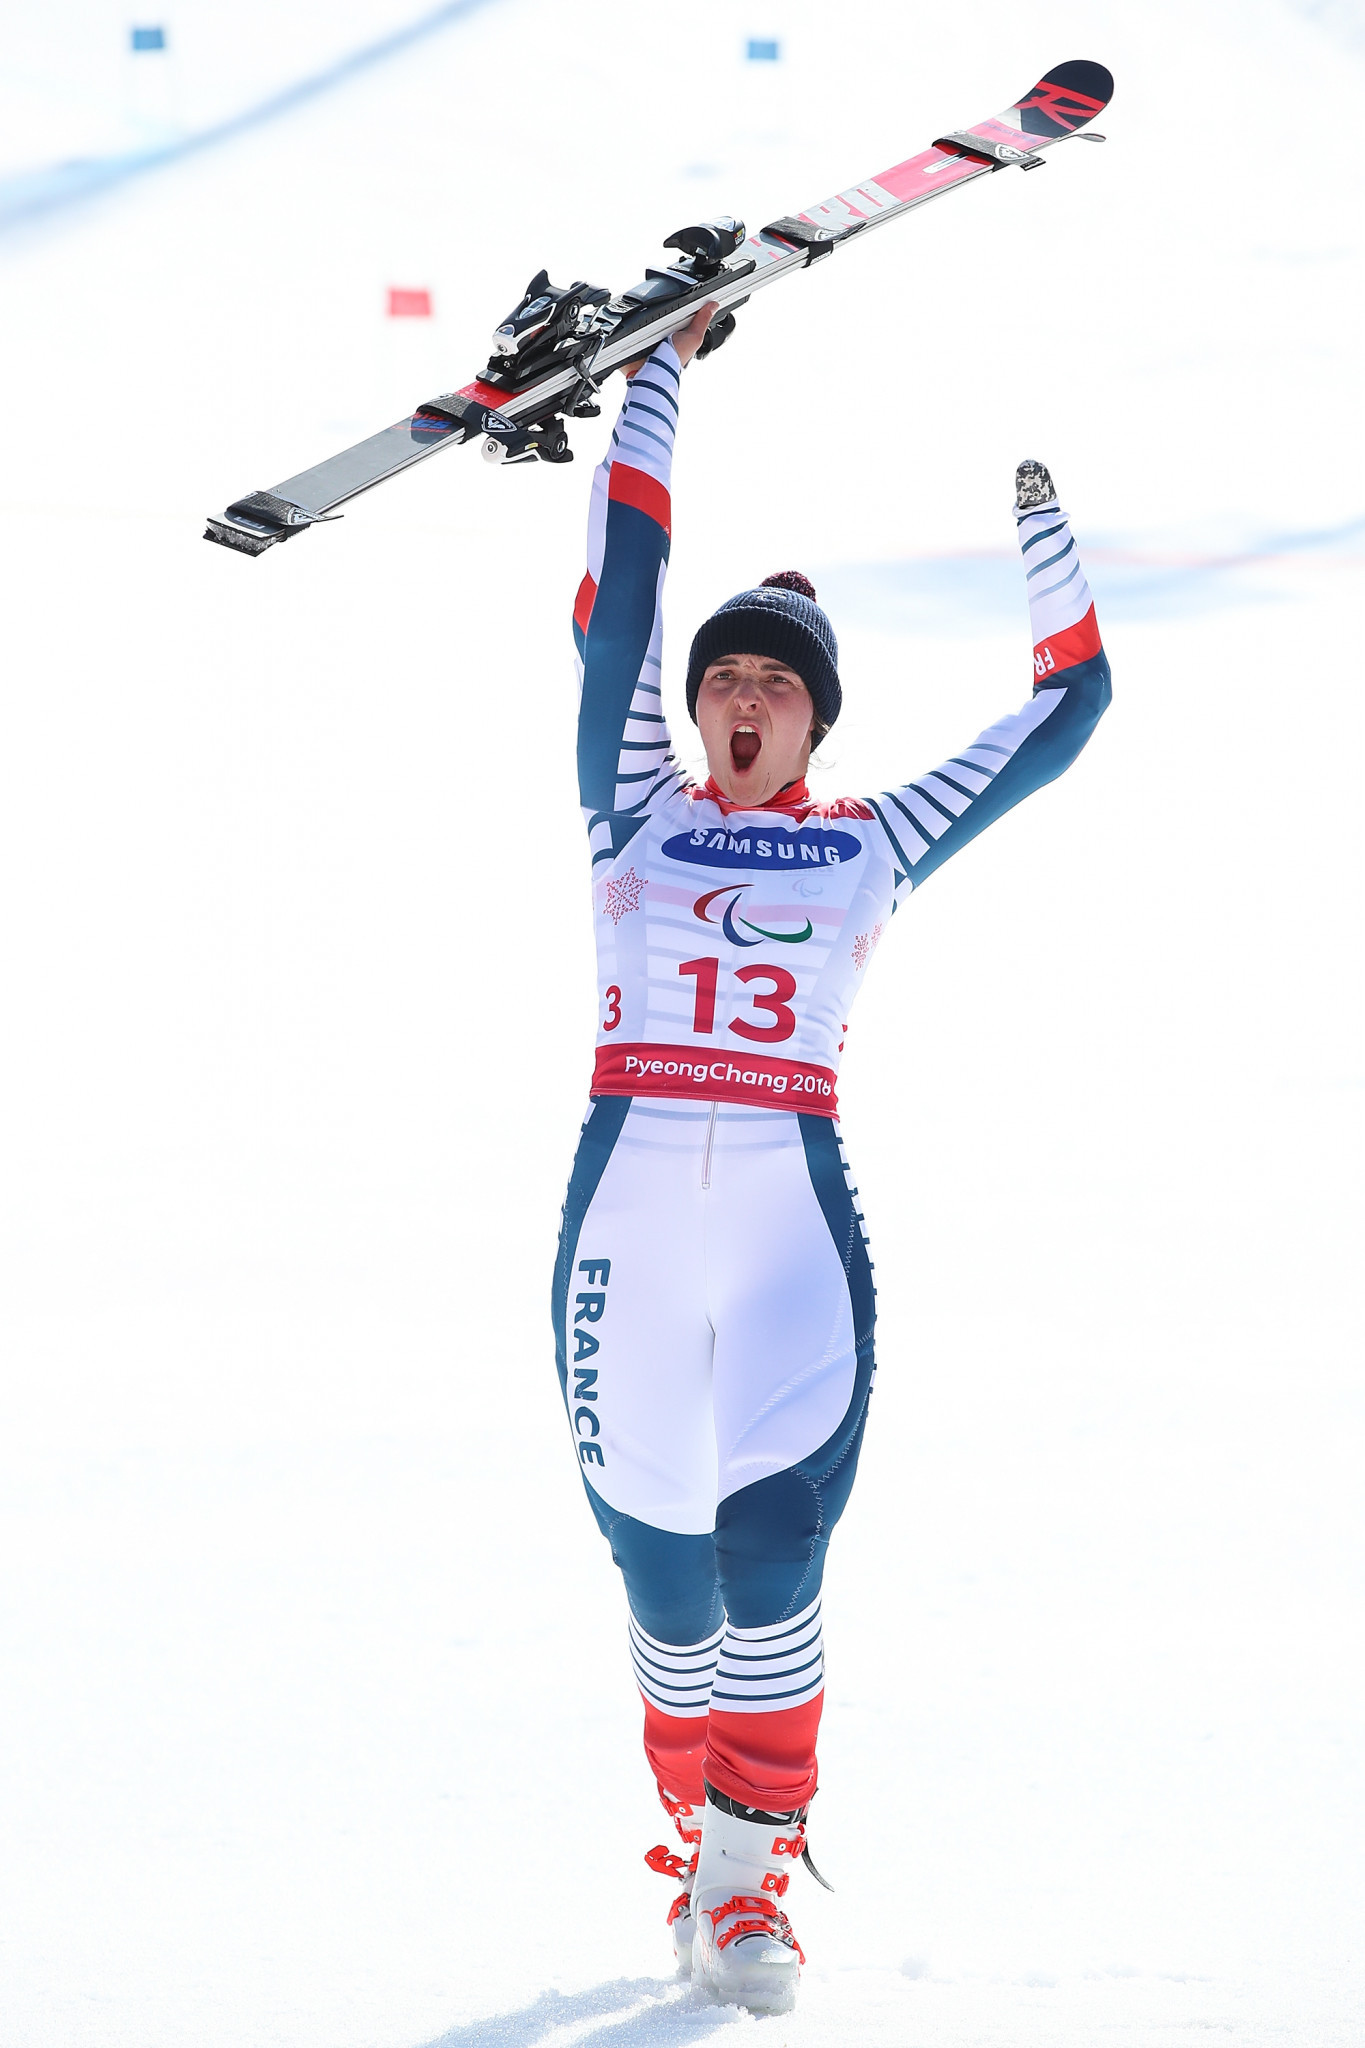 Bochet concludes season with perfect record at World Para Alpine Skiing World Cup in La Molina